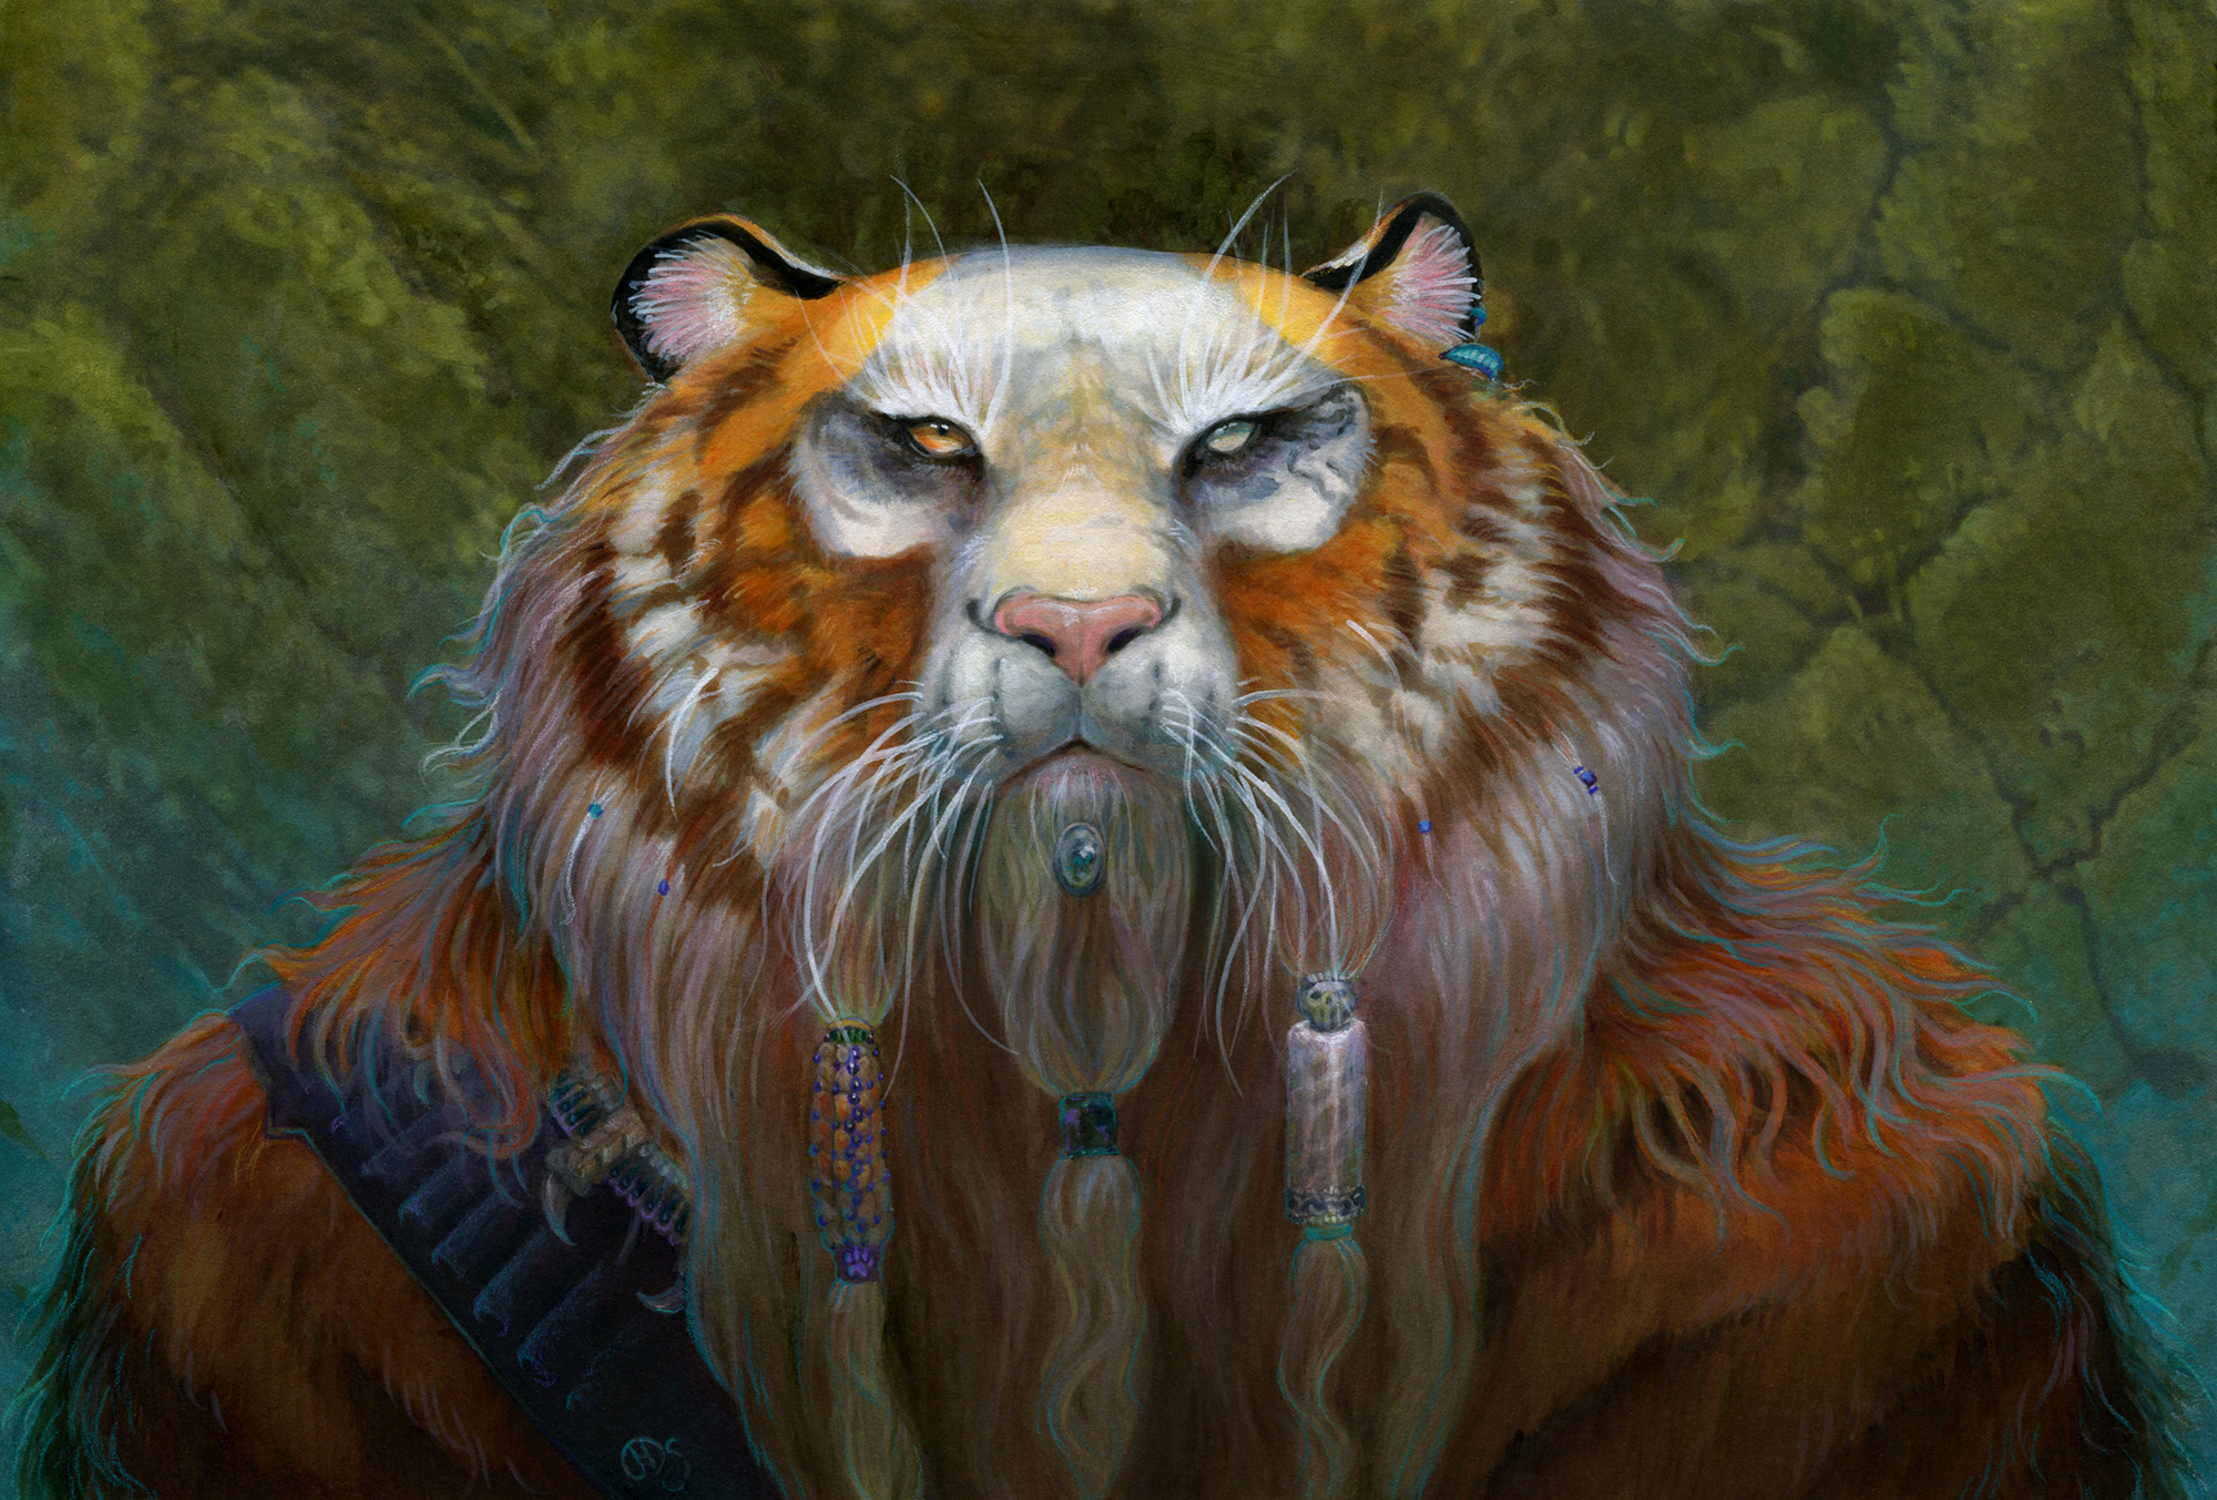 Dwarf Tiger Artwork by Diana Stein